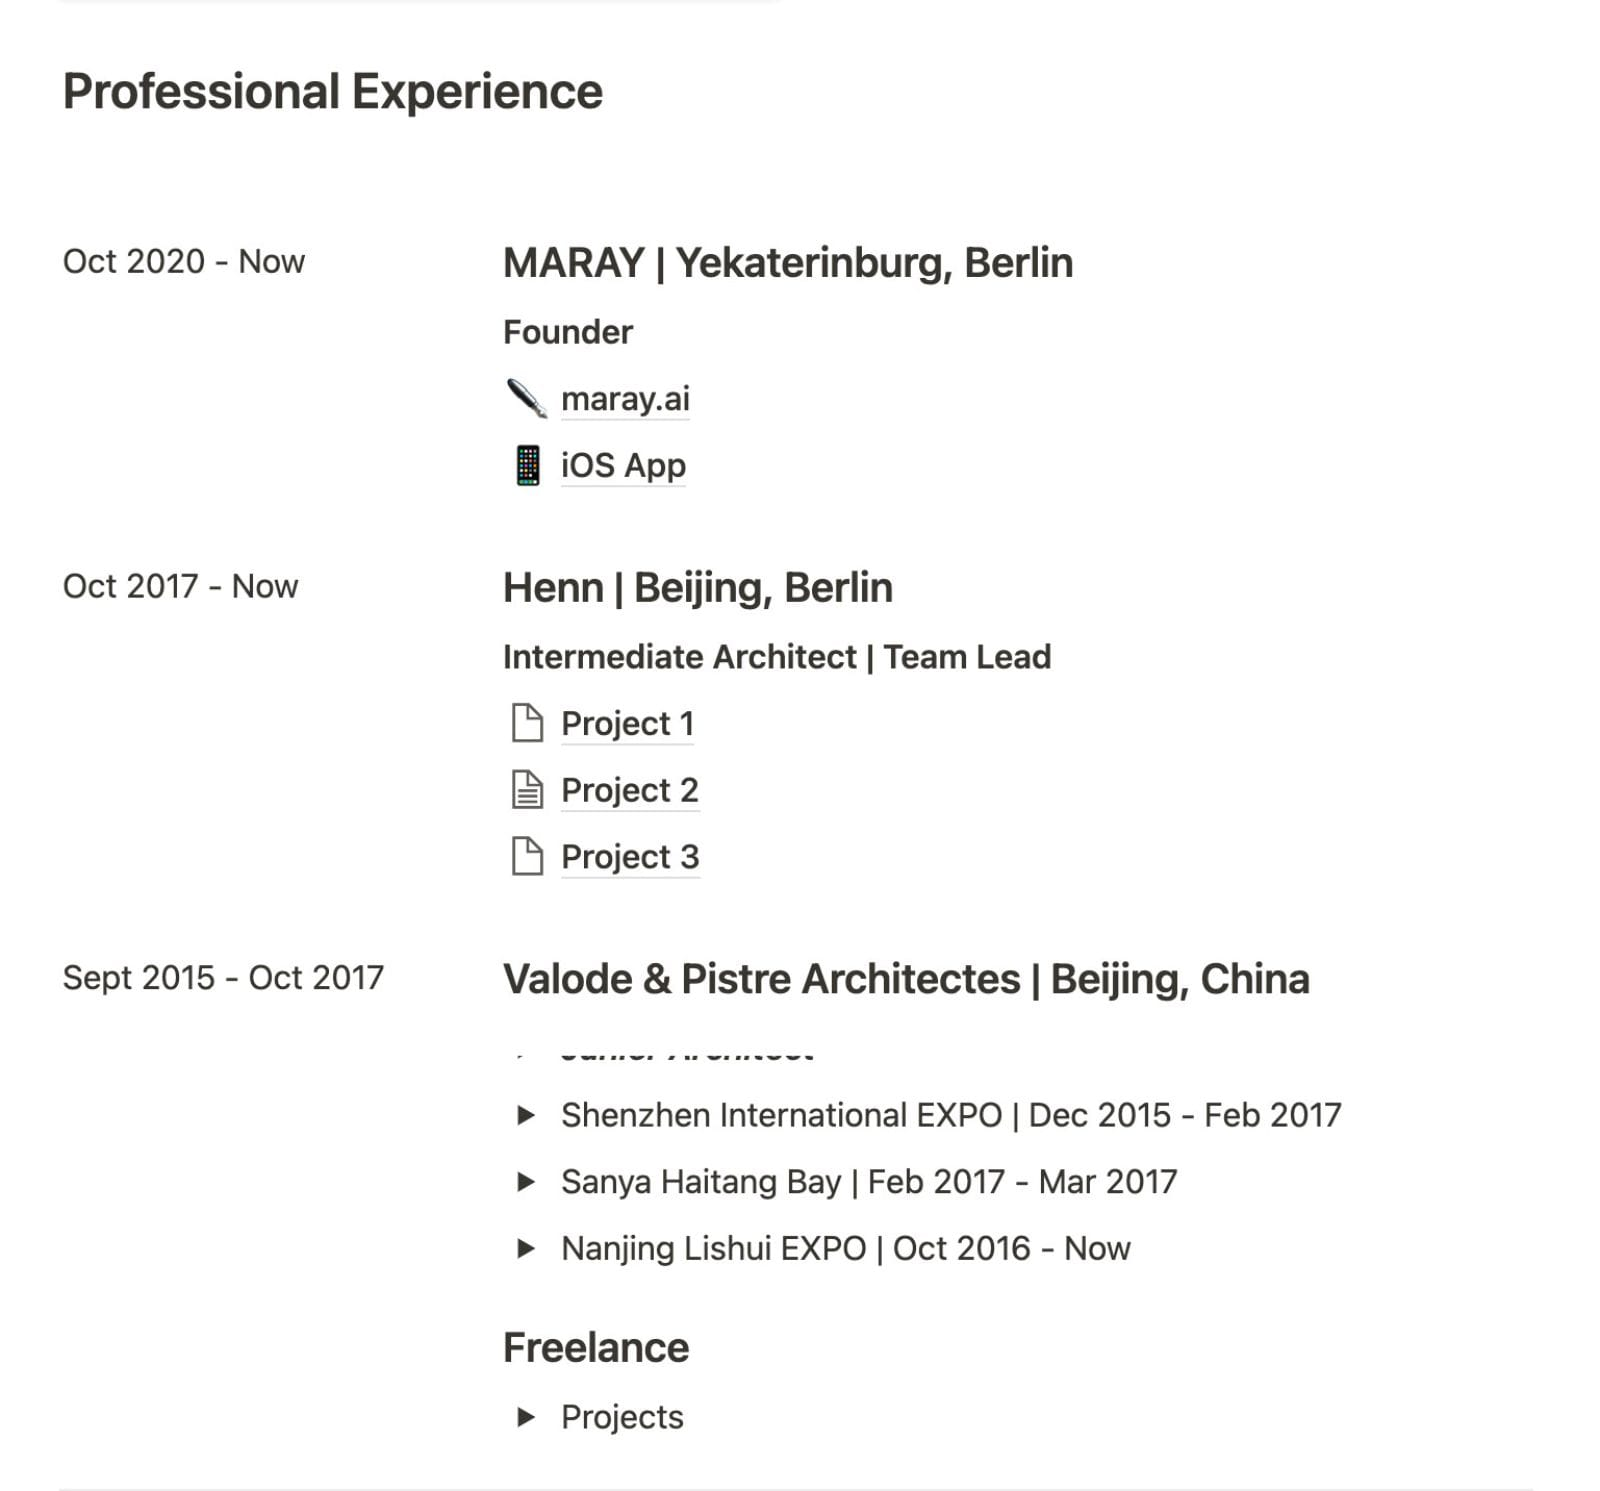 Professional experience section in the resume.